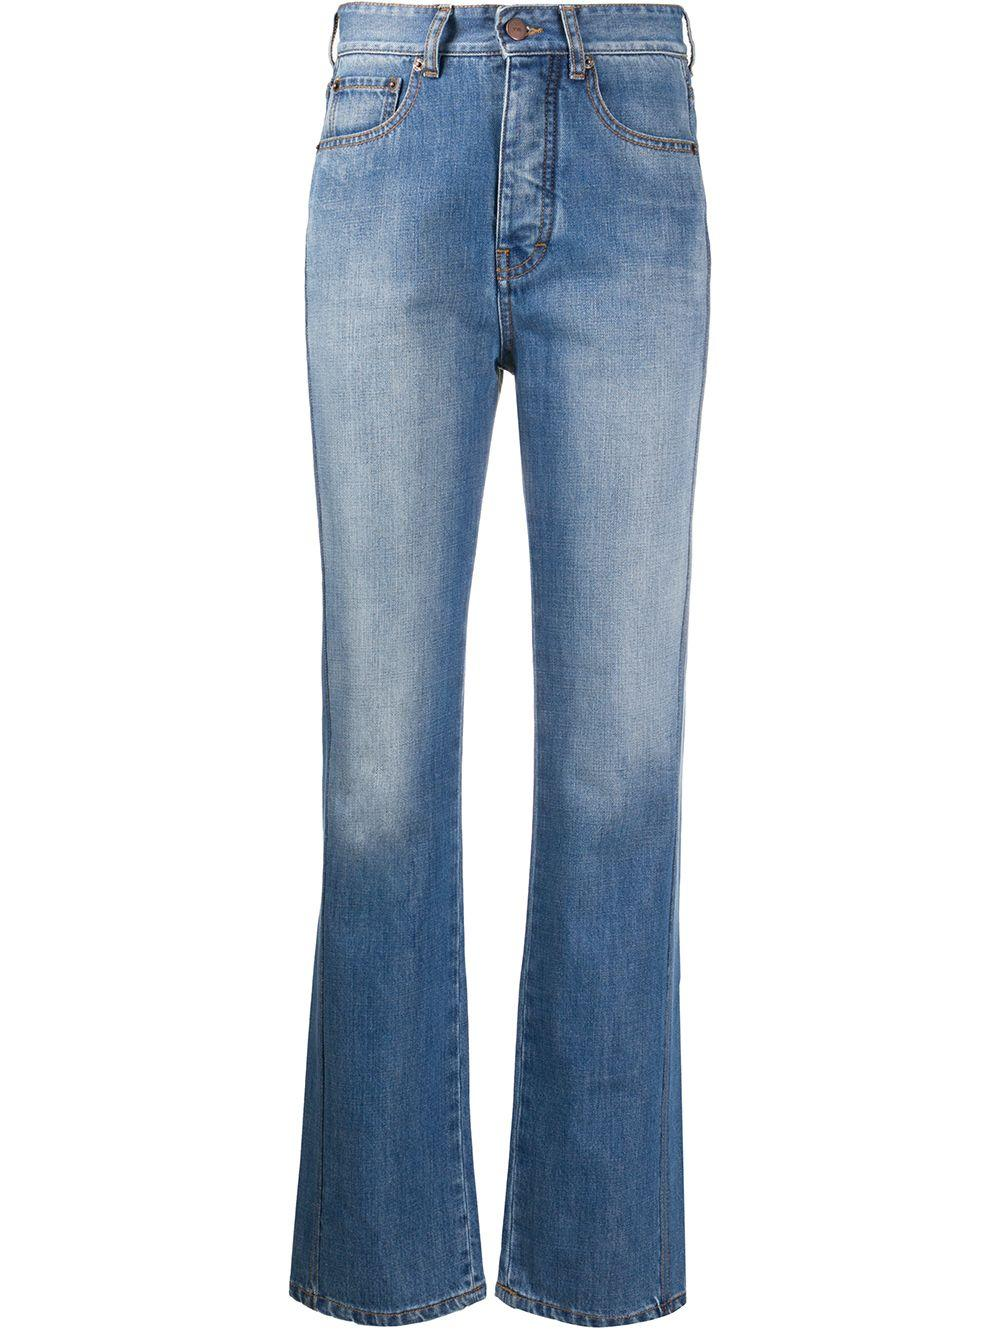 Midtown Button Fly Straight Leg Jean Item # 2320DJE001767A